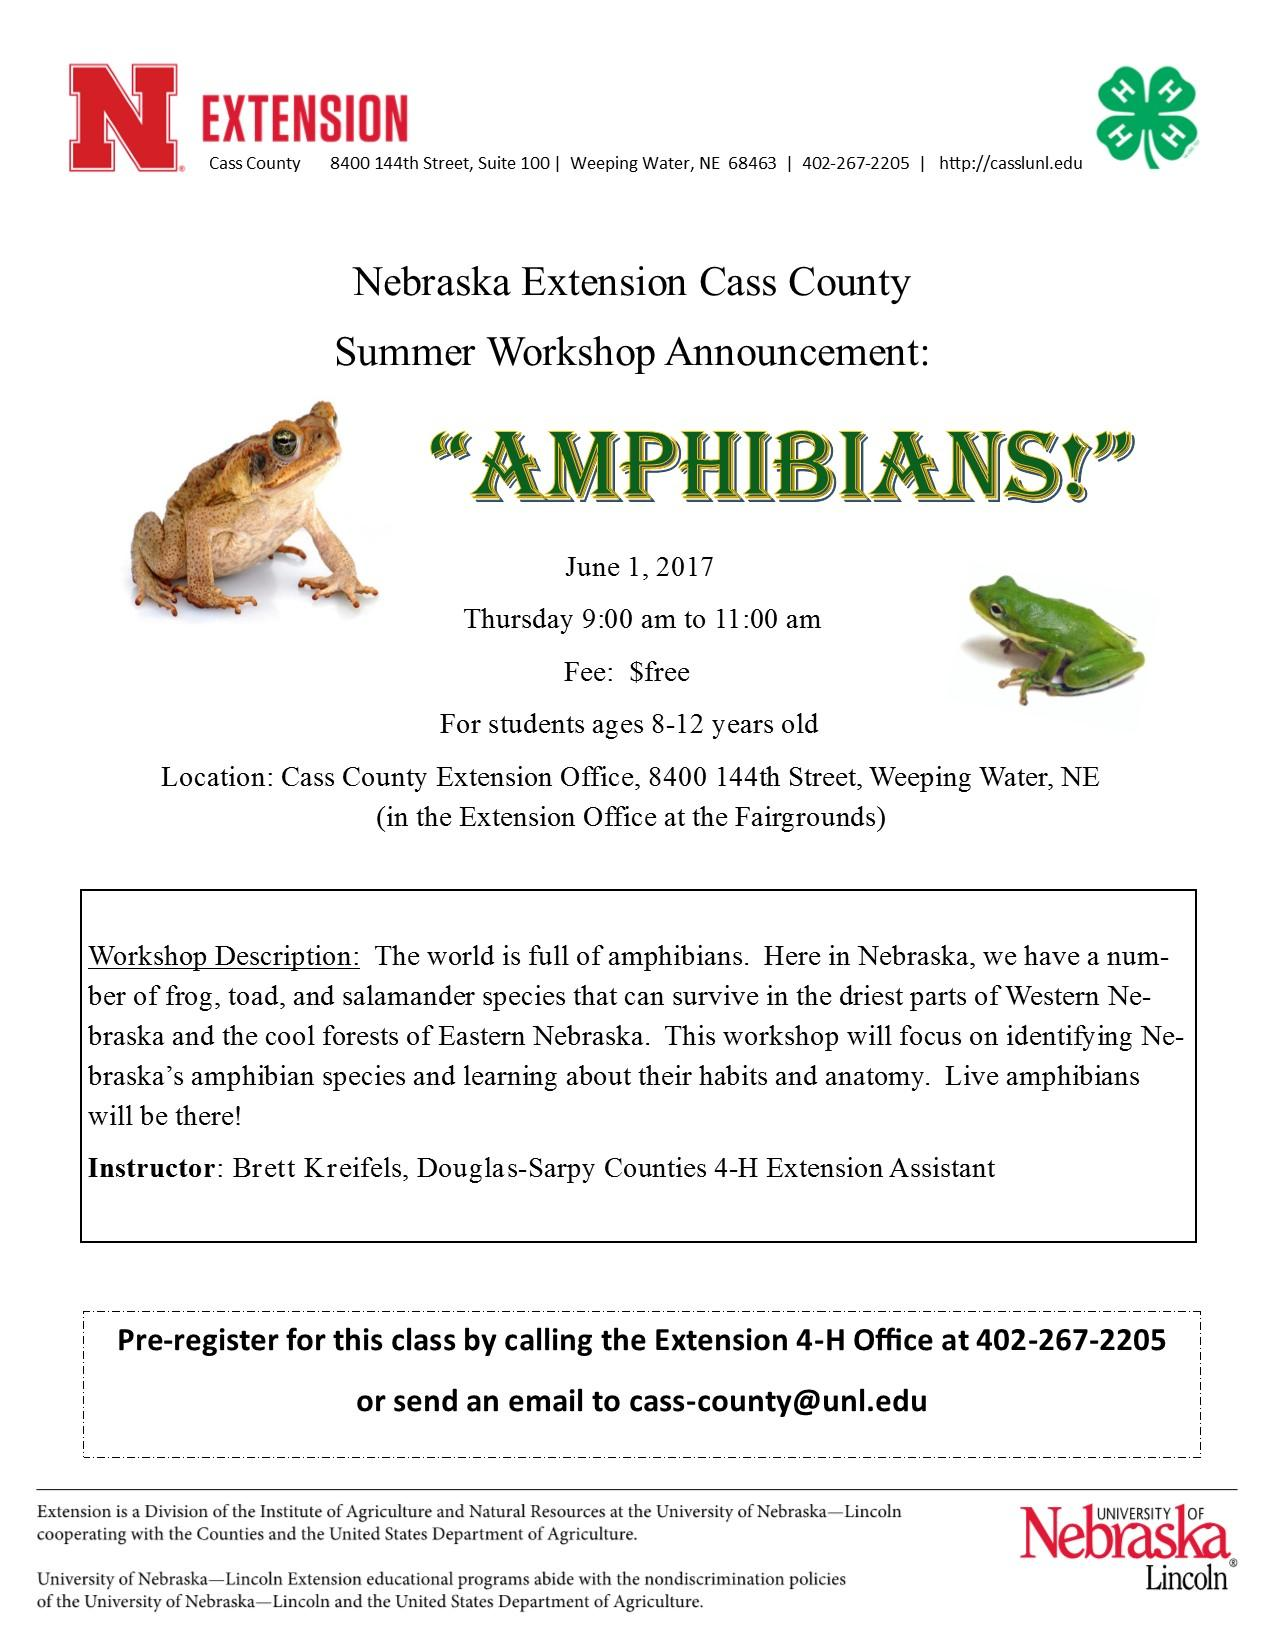 Amphibians workshop flyer 1